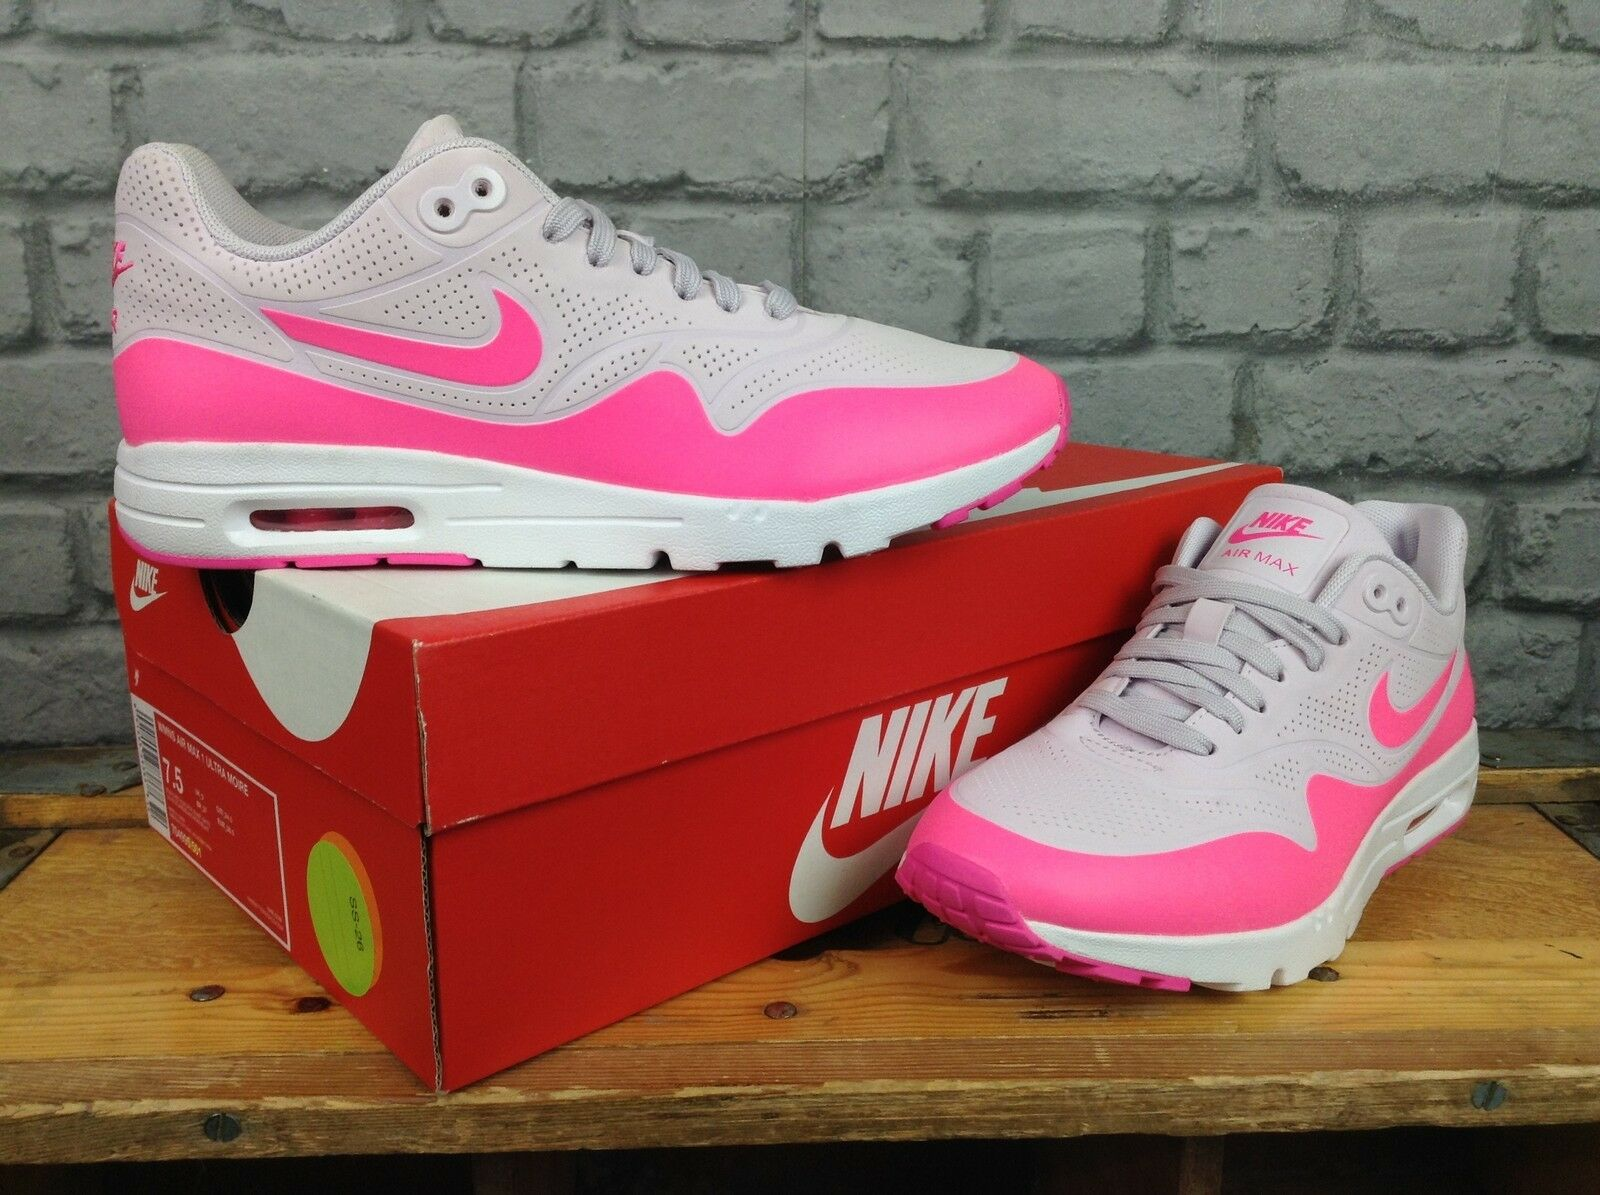 Nike Femmes lilas rose air air air max 1 ultra moire Baskets fd4bd2